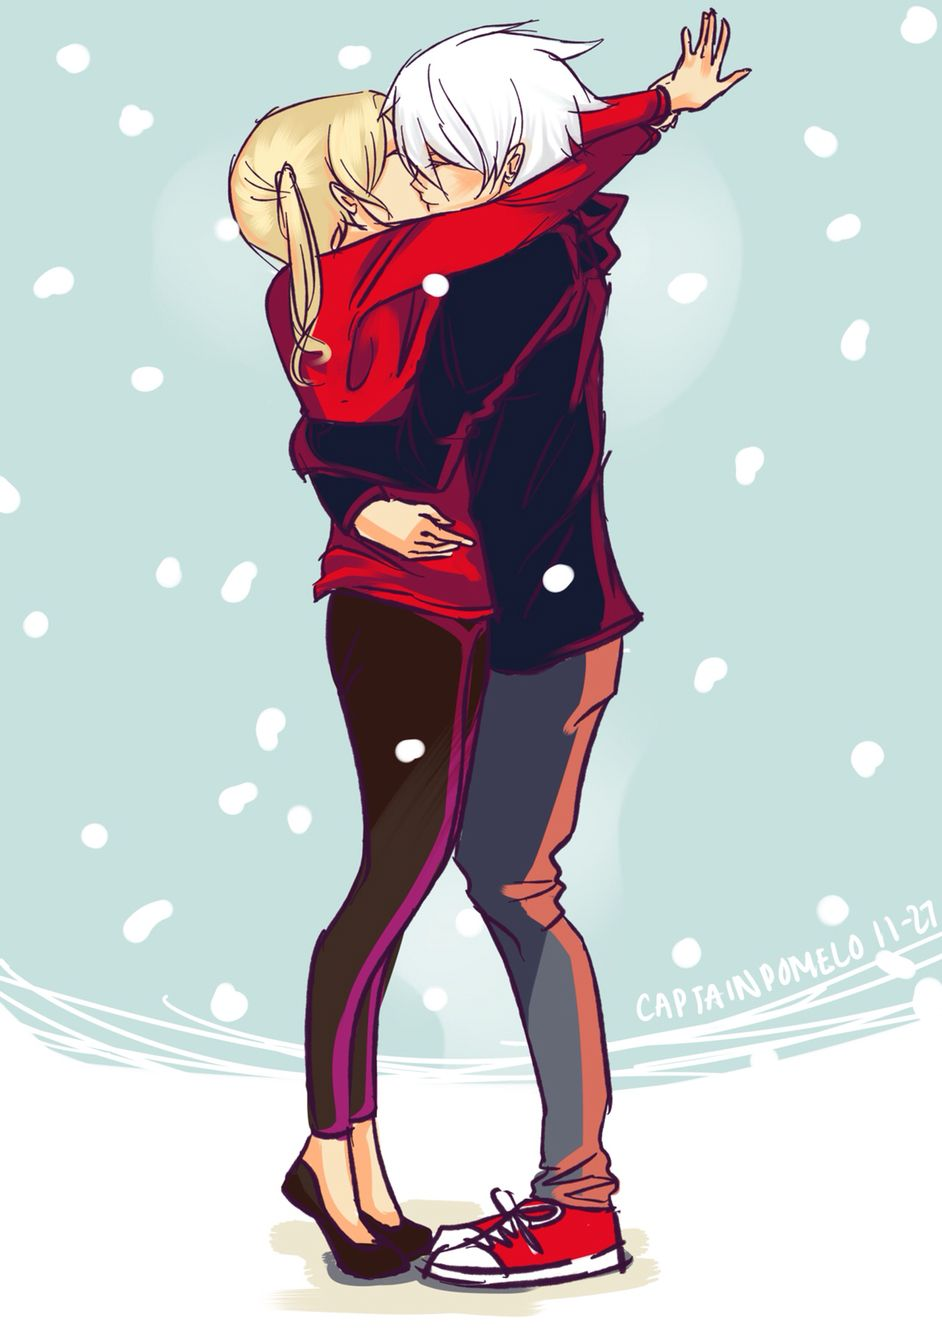 Maka and Soul. I will always ship them. ❤️ my favorite couple ever, hands down. #souleater #makaalbarn #souleaterevans